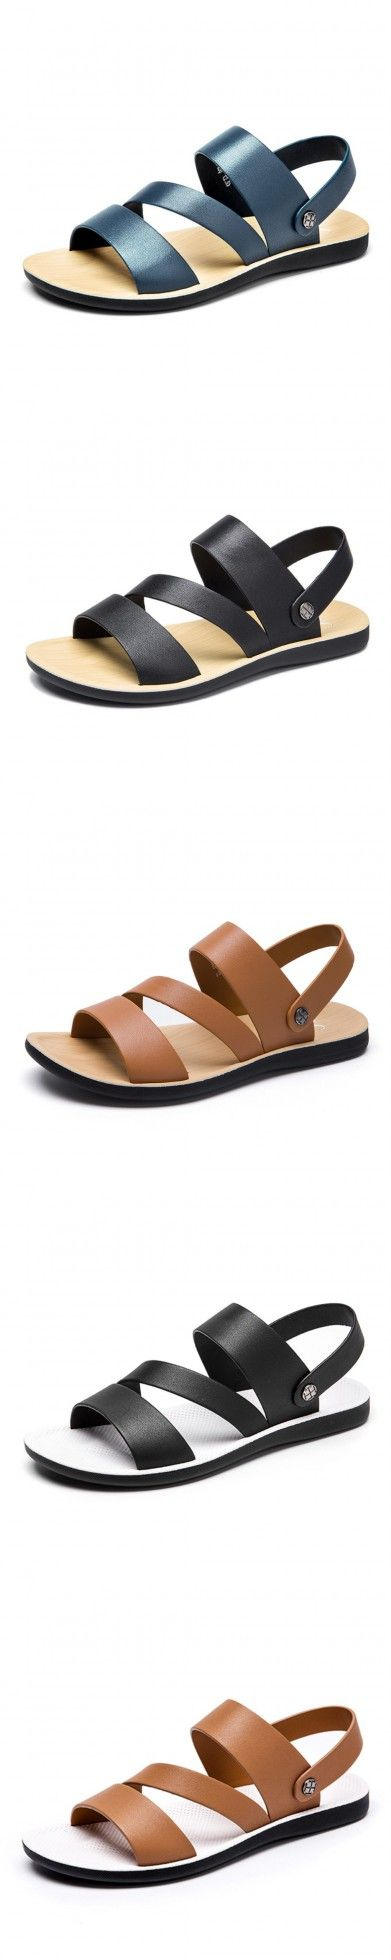 """Golden Even Shoe Summer Sandals Genuine Leather Skid  Breathable Casual Male Sandals """"Cheap Wedge Sandal, Flip-flops United States Of America"""" Summer Sandals Genuine Leather Skid  Breathable Casual Male Sandals."""